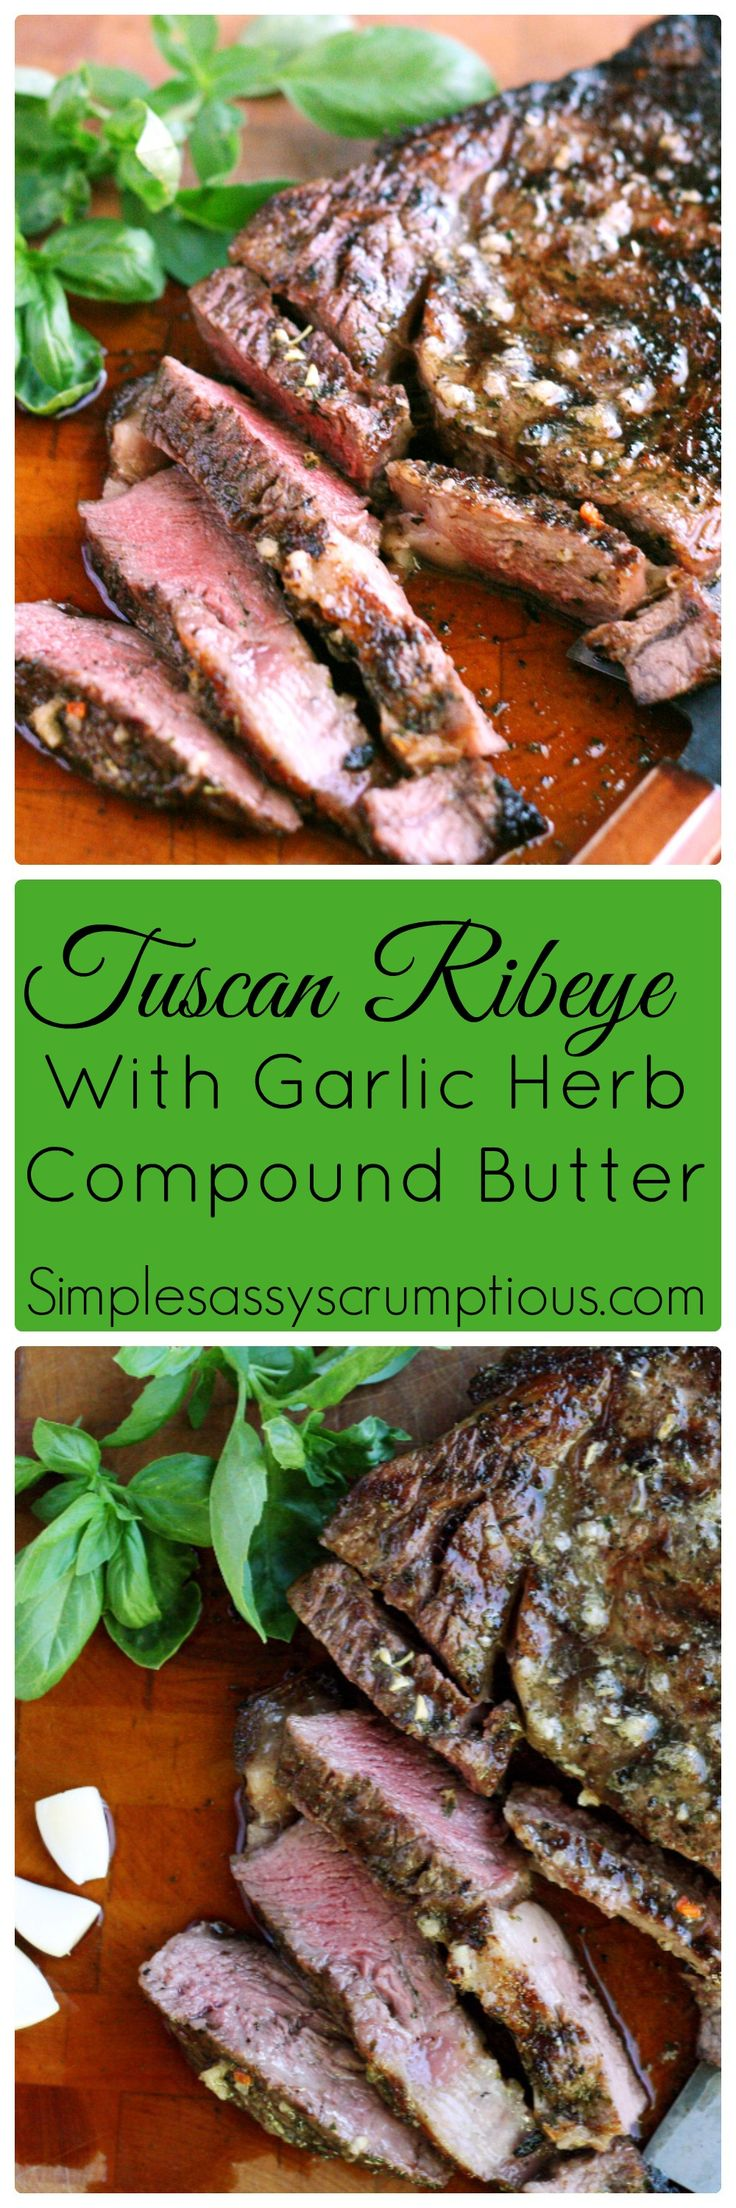 Tuscan Ribeye with a flavorful herb compound butter.